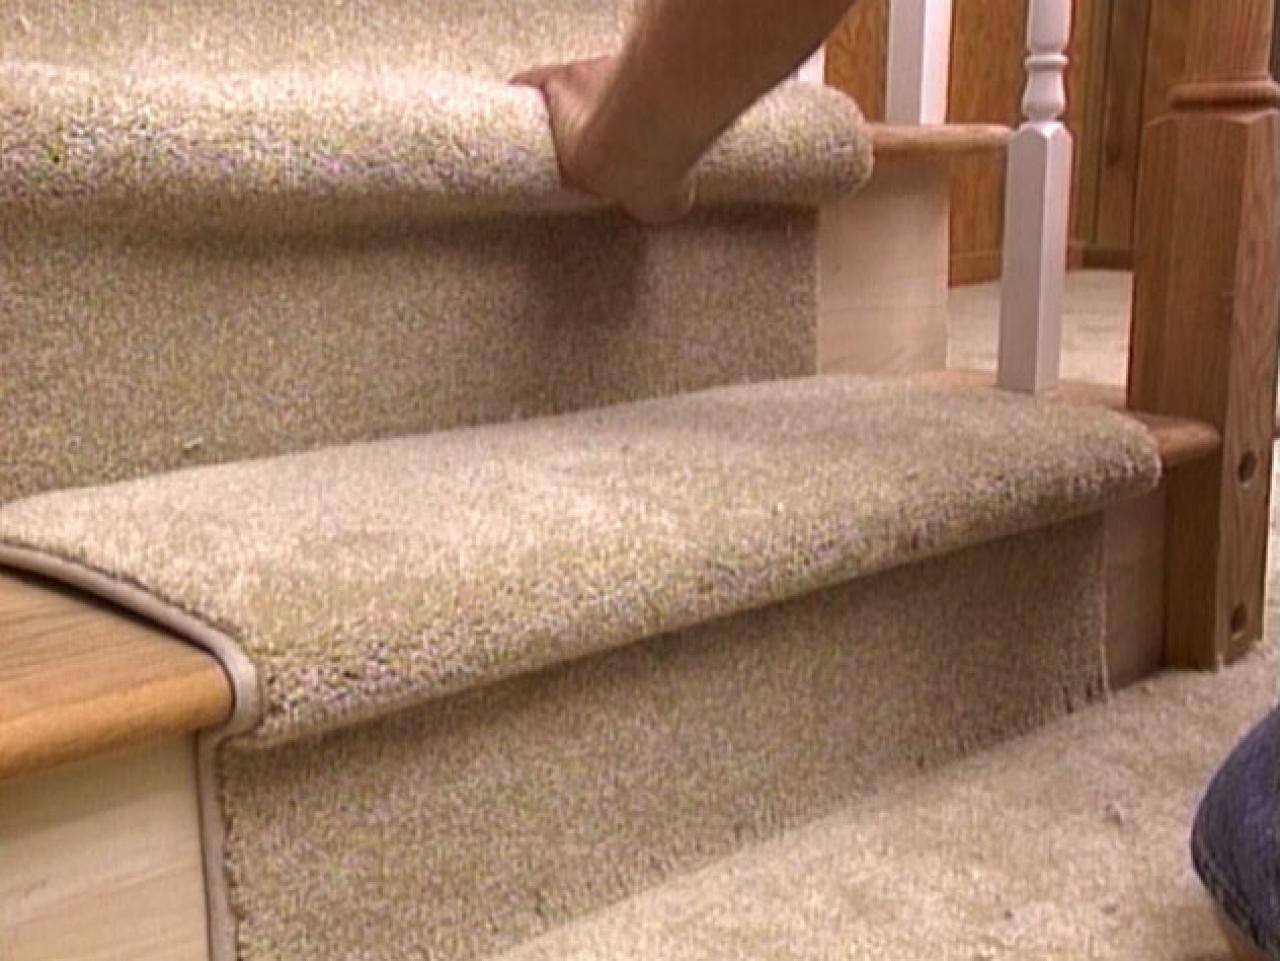 How To Install A Carpet Runner On Stairs Hgtv With Regard To Rug Runners For Stairs (#8 of 20)